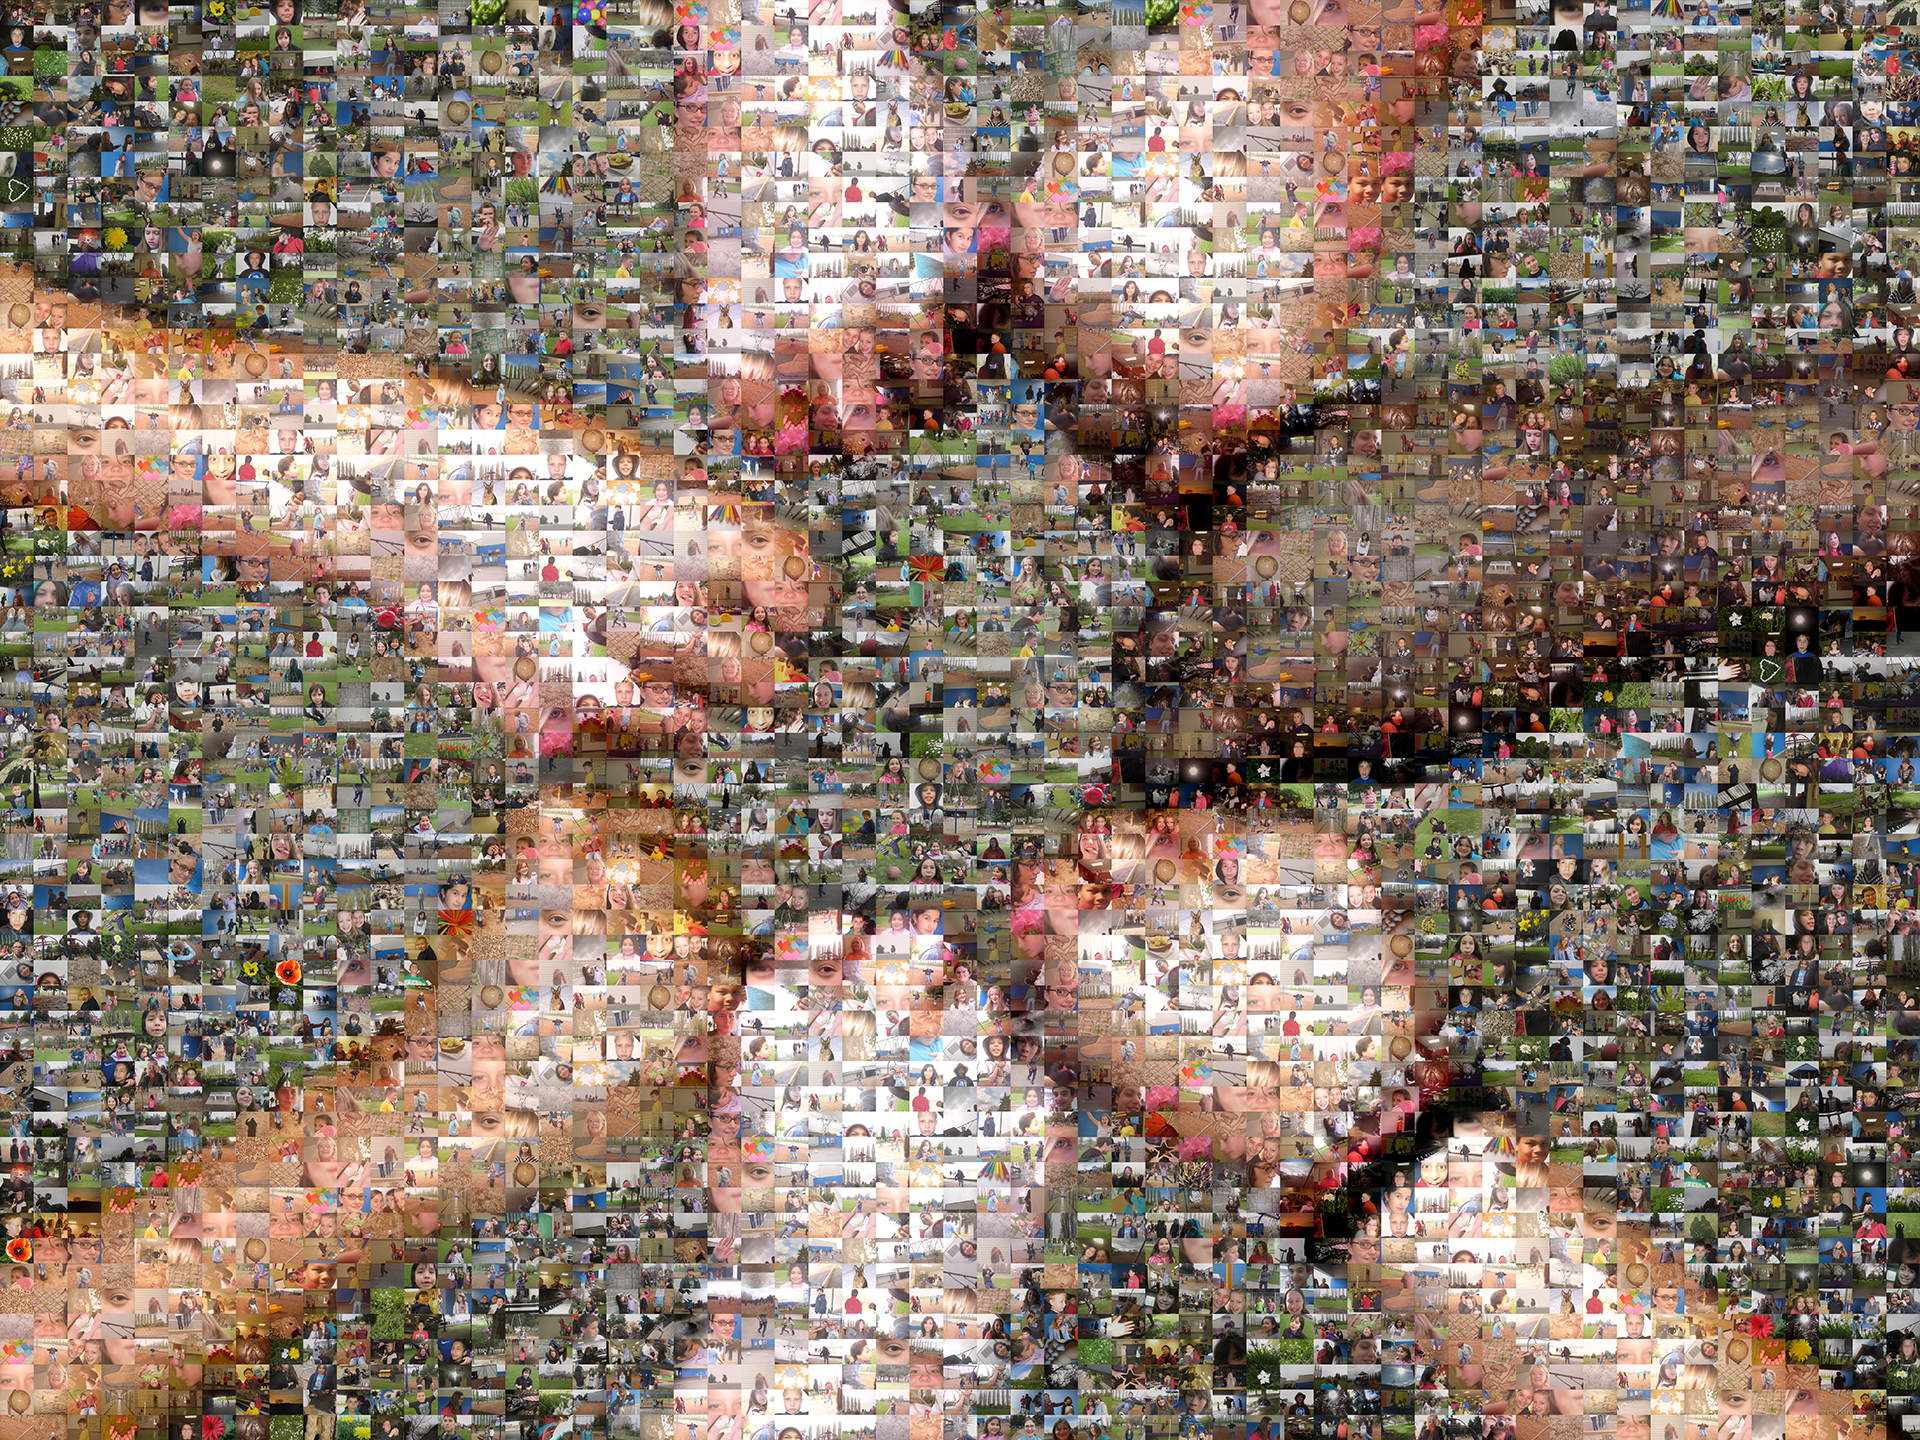 photo mosaic a school project using 872 photos taken by the students